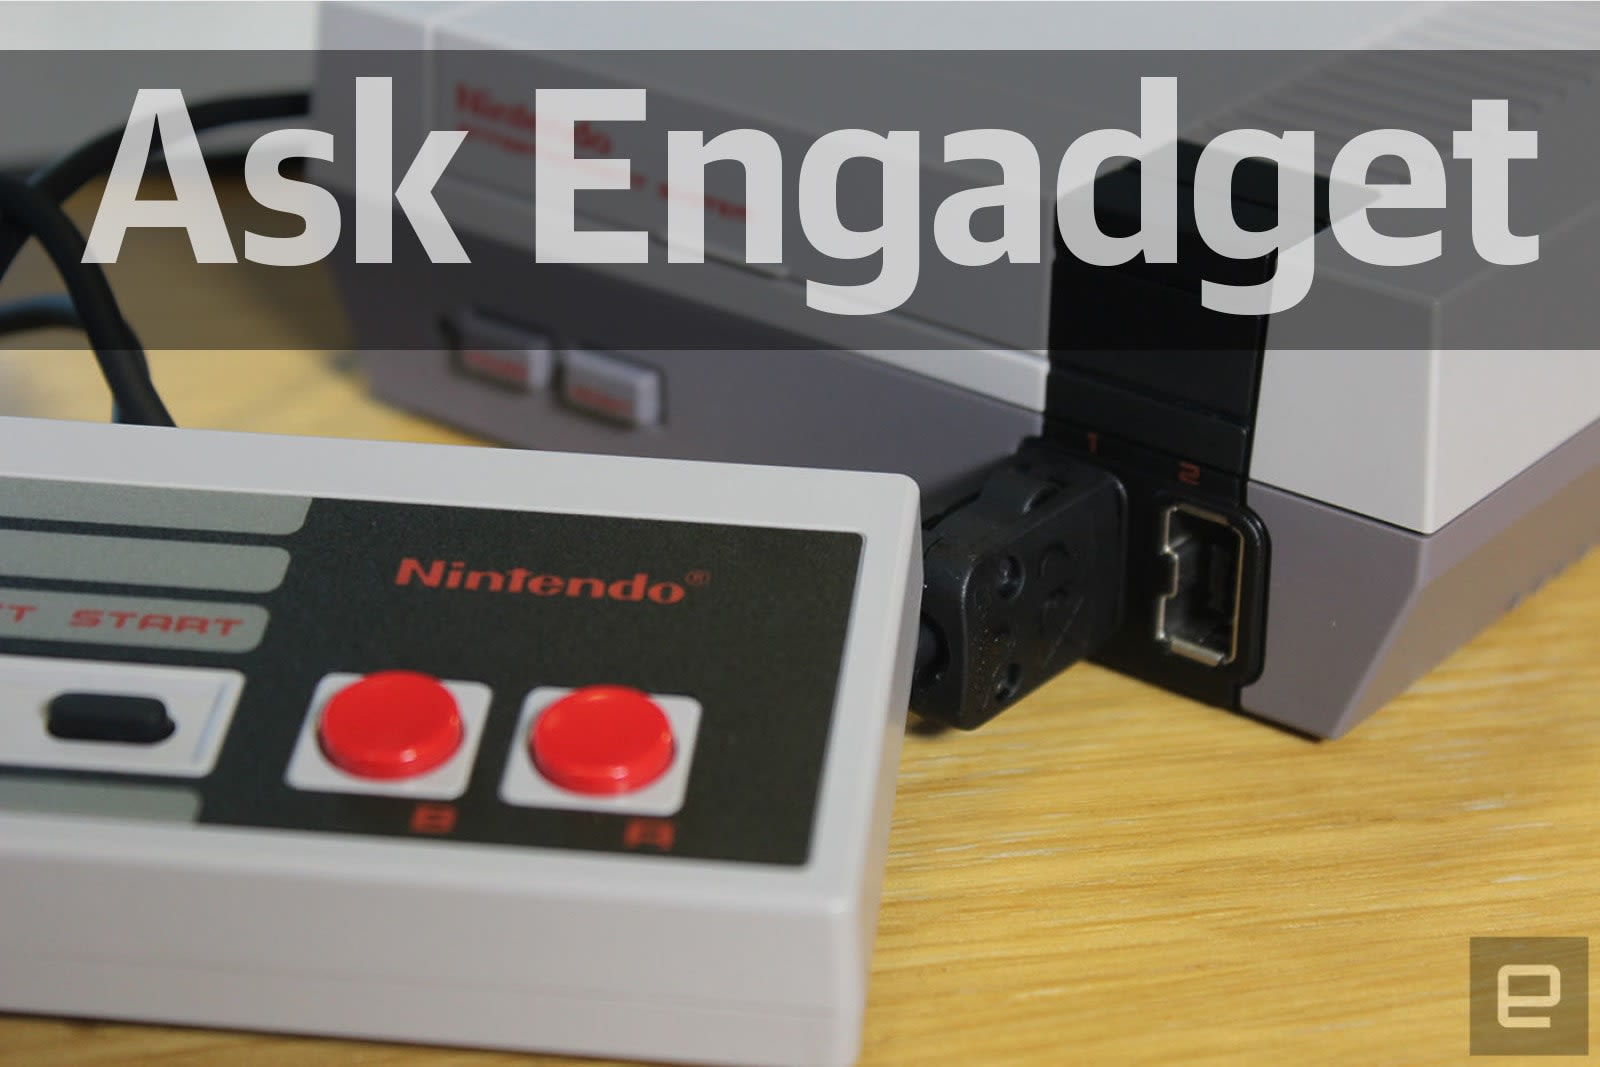 Ask Engadget: Should I buy a retro gaming console?